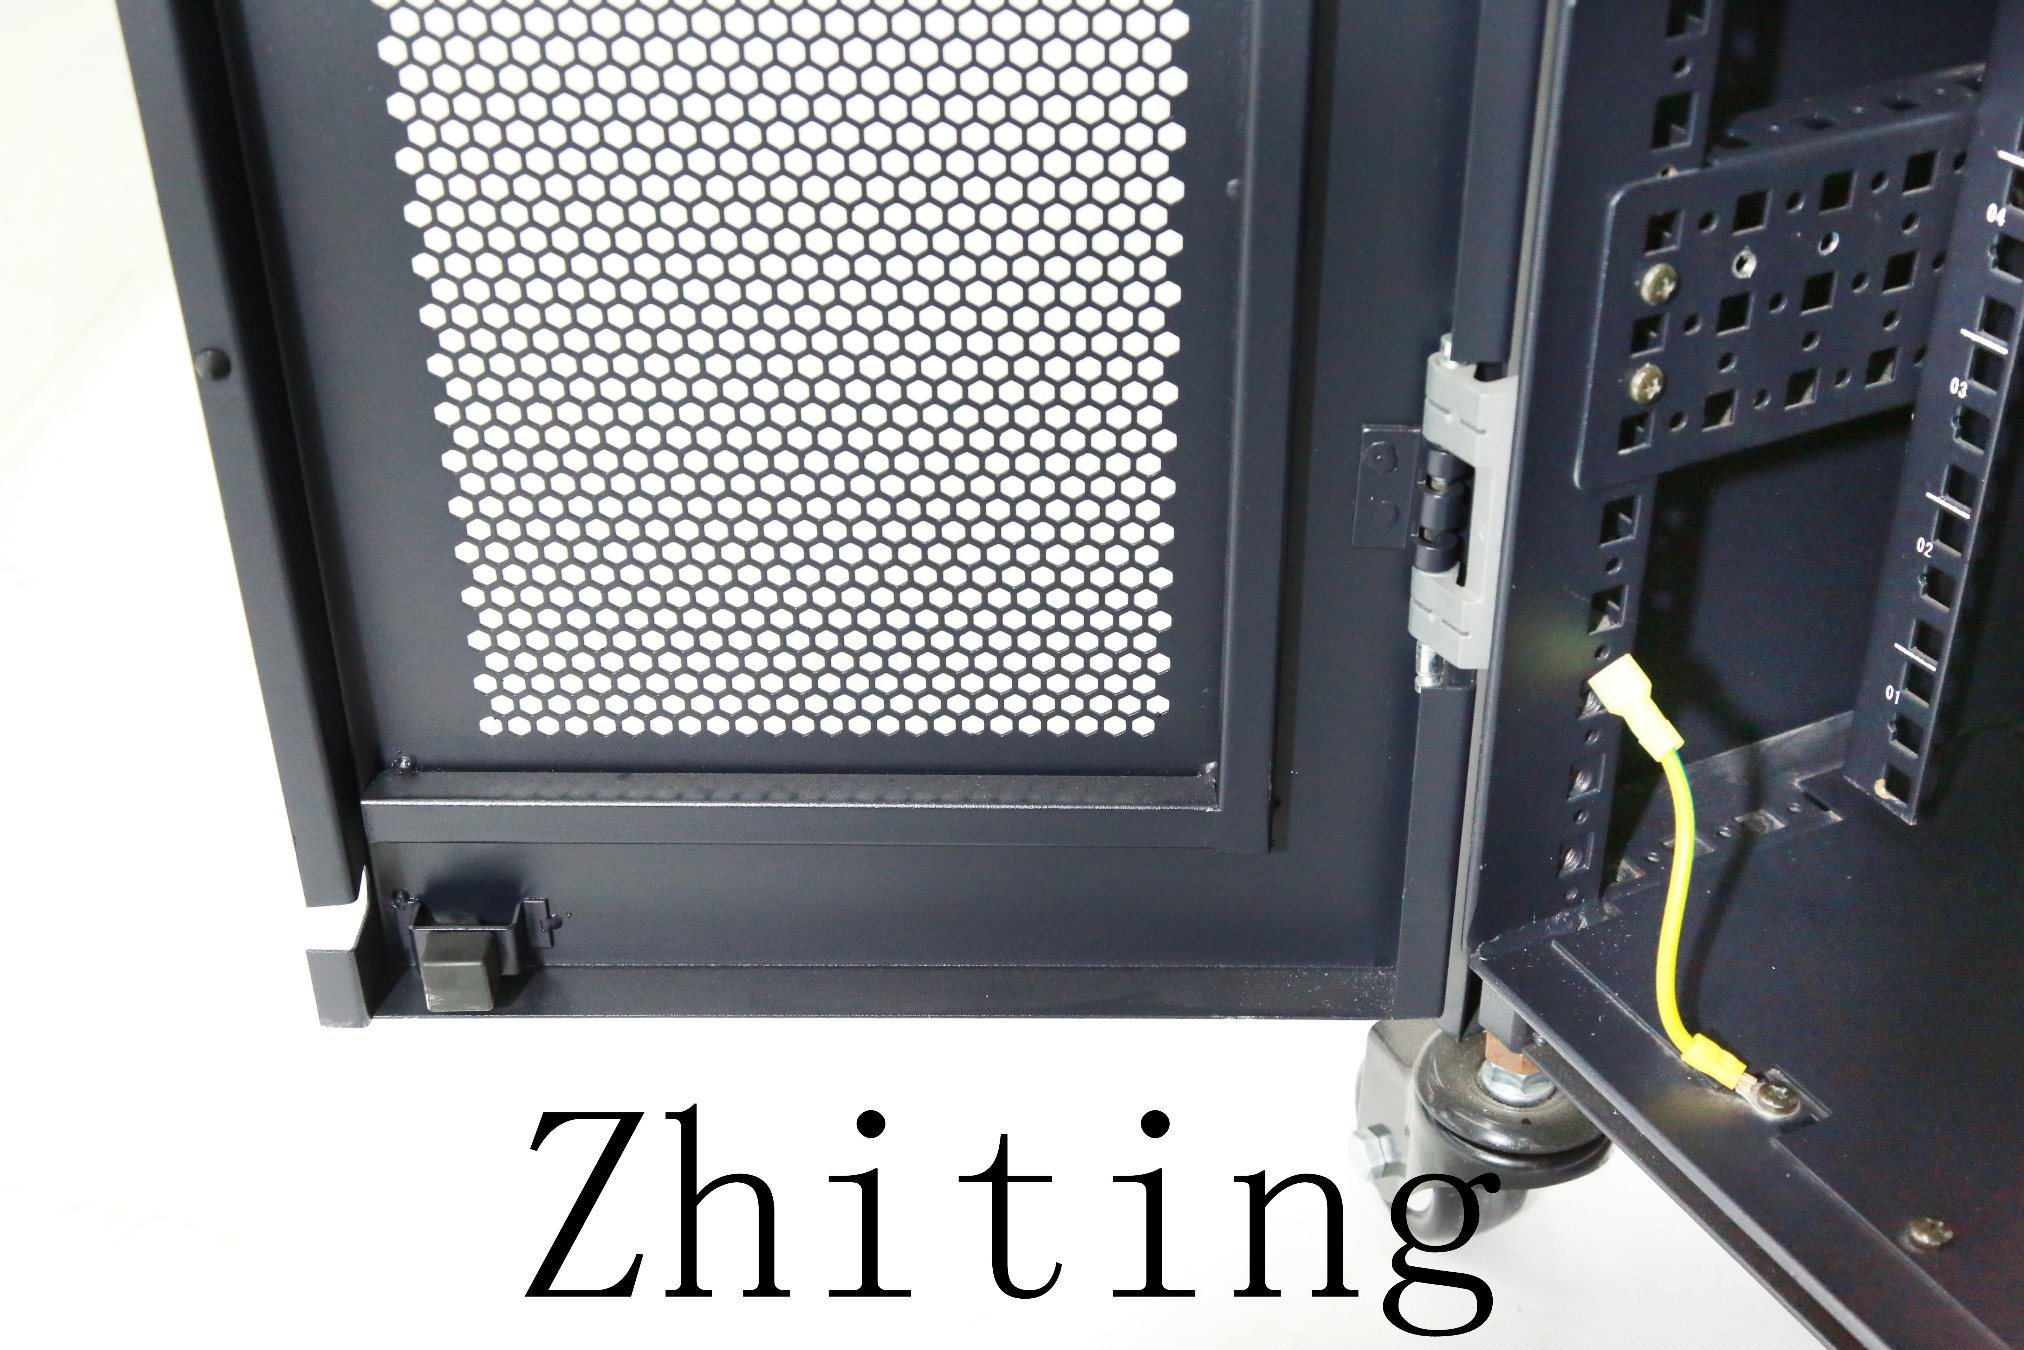 19 Inch Zt HS Series Server Network Cabinet Enclosures with Earthquake Resistant Structure